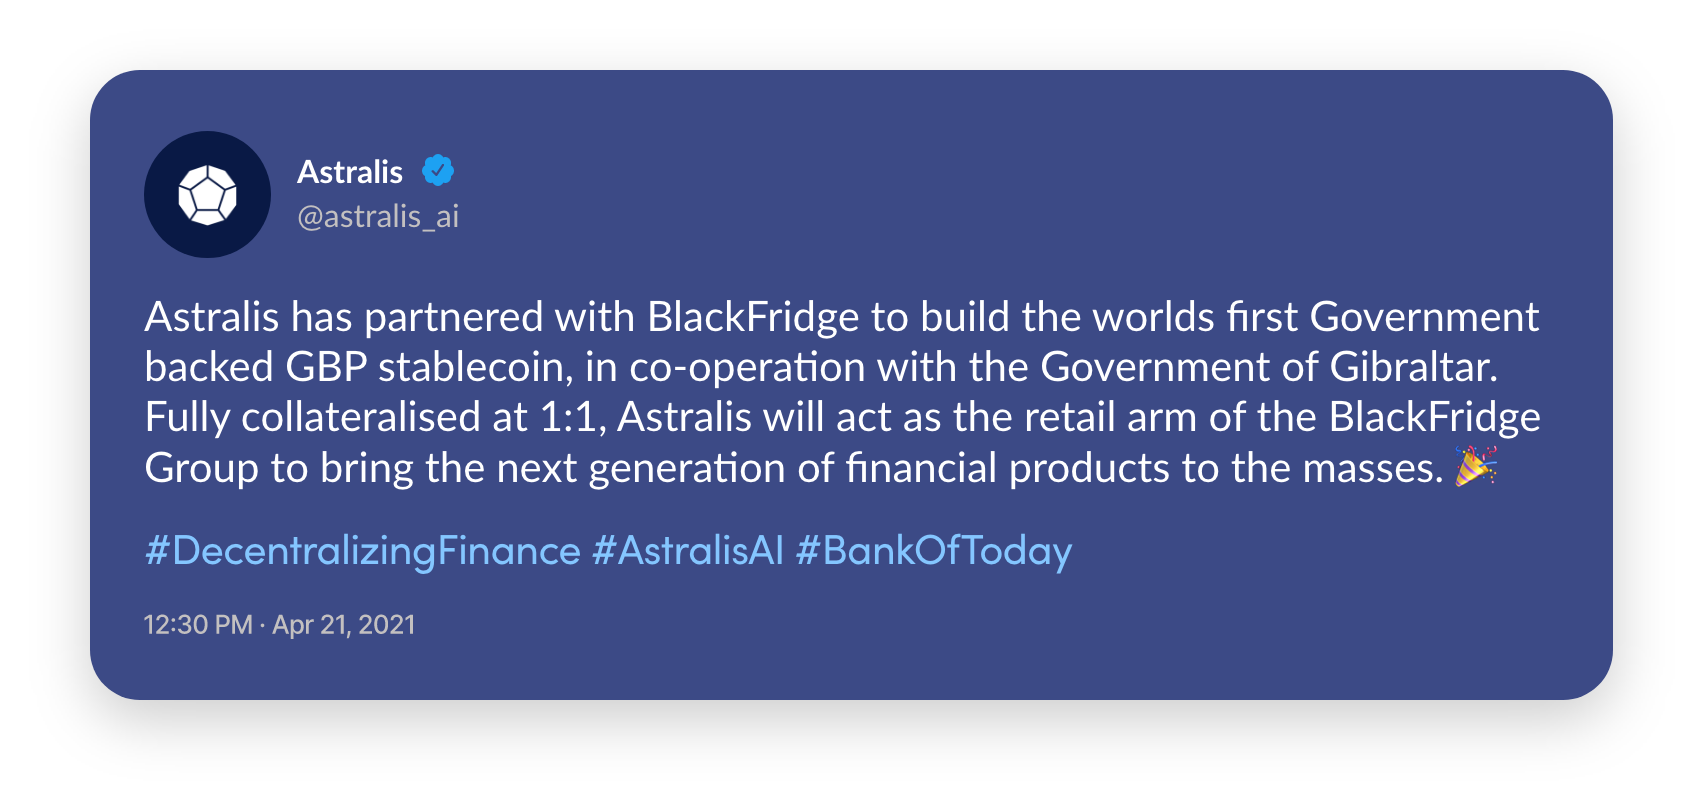 Astralis has partnered with BlackFridge to build the worlds first Government backed GBP stablecoin.